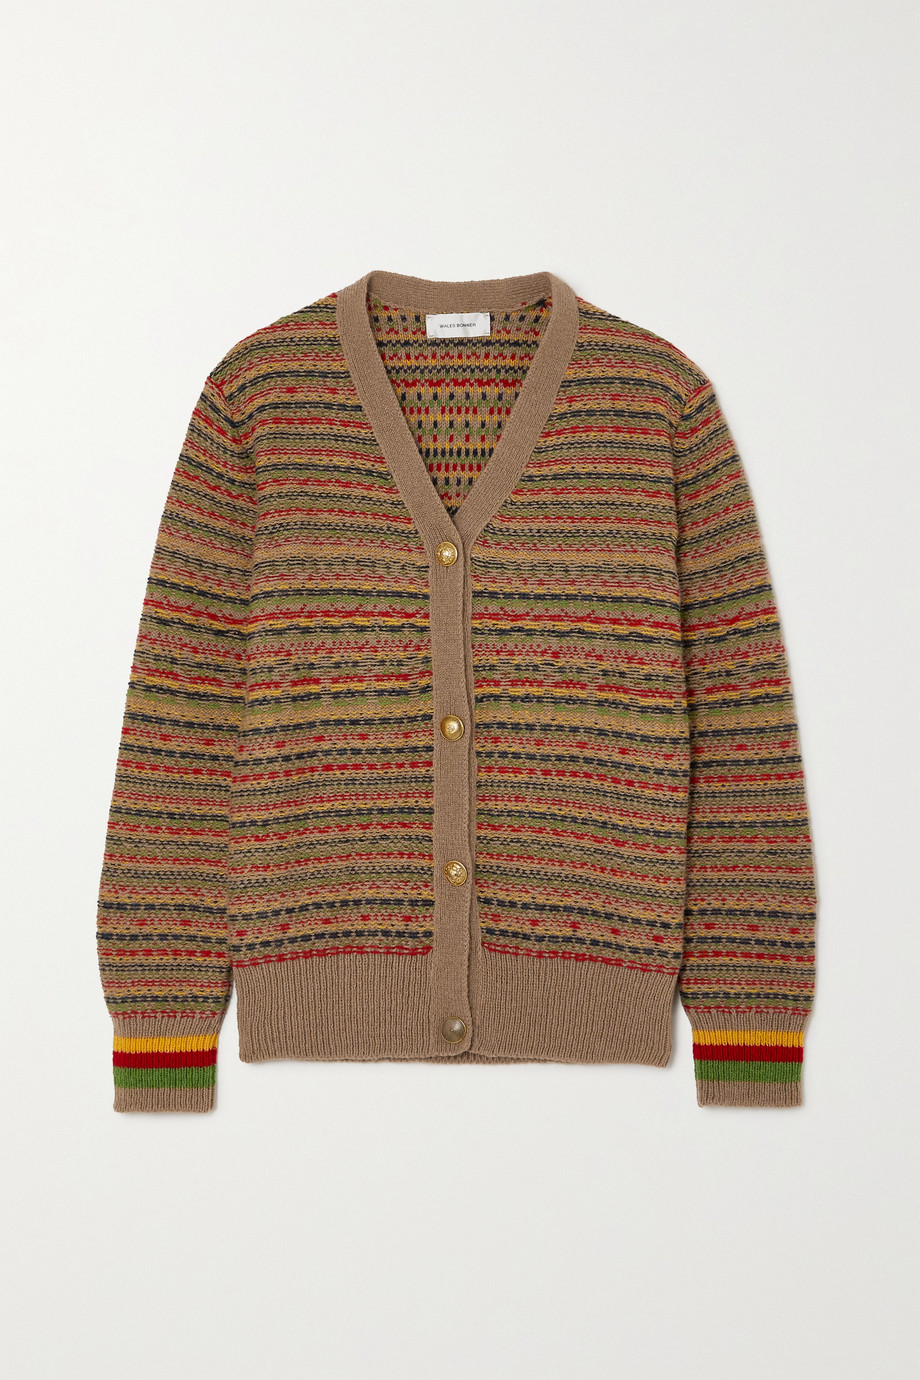 Wales Bonner Jamaica Fair Isle wool cardigan